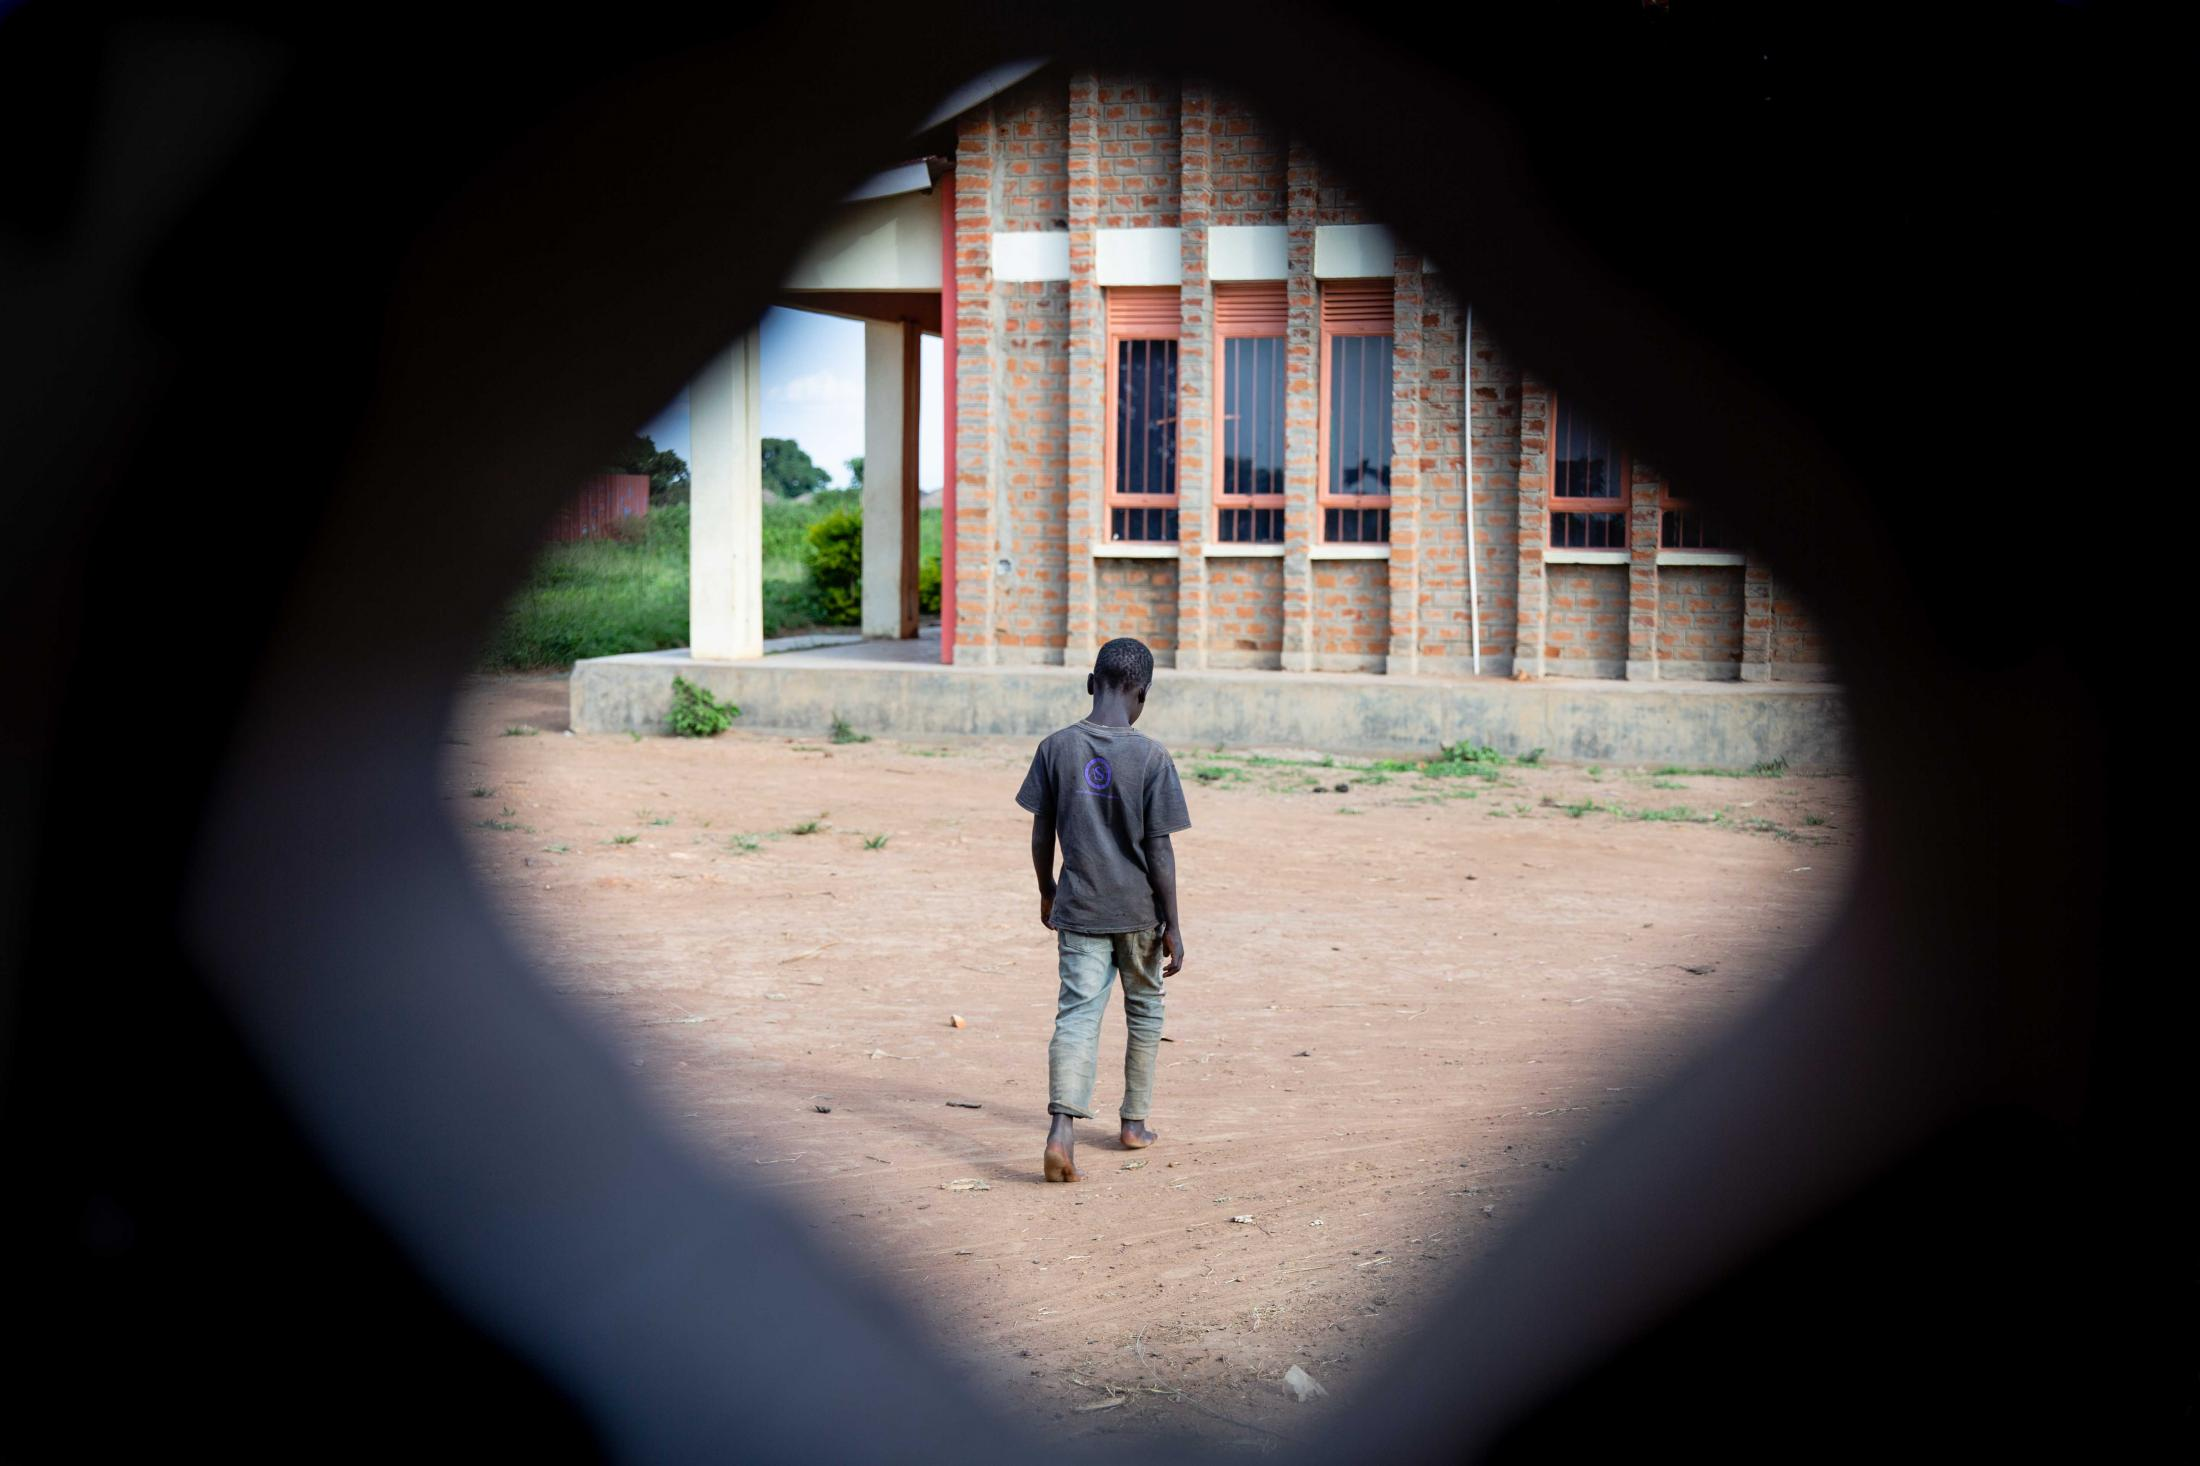 A child walks at the now deserted rehabilitation center, Hope for Humans that used to house and take care of some of the sick children suffering from nodding syndrome in Omoro and neighbouring districts.